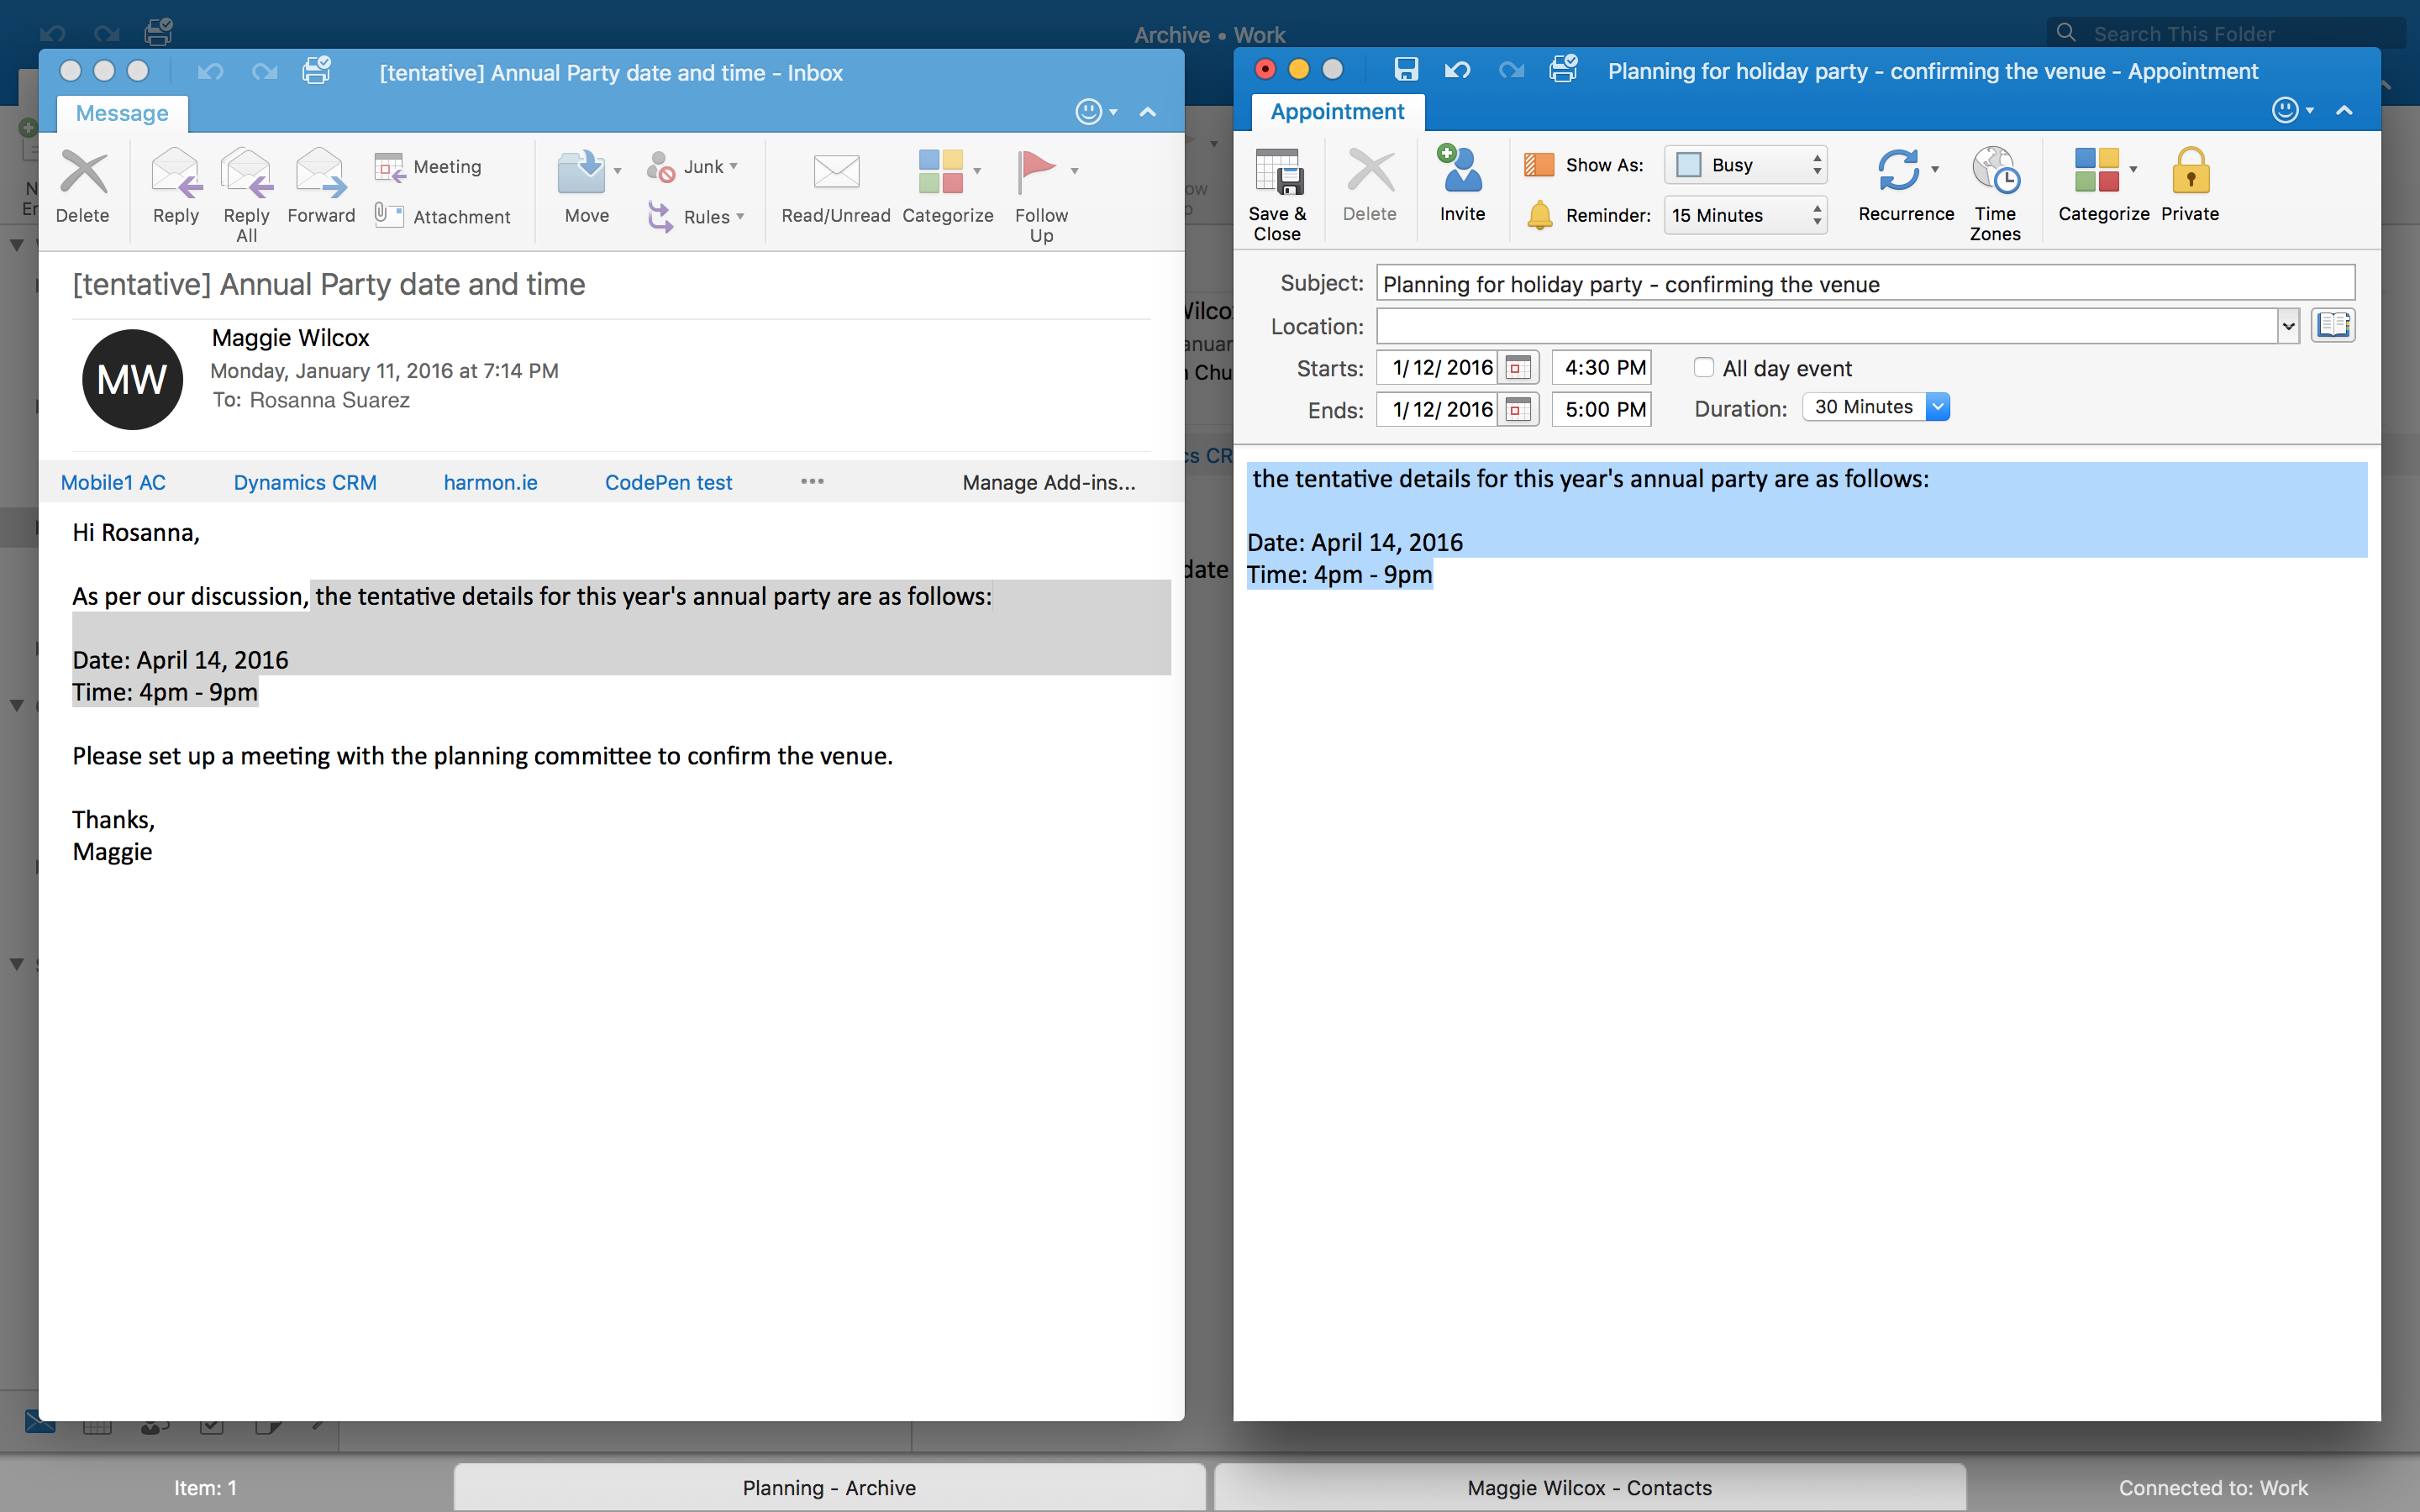 Outlook 2016 mac download all mail | Export Mac Mail to Outlook 2016